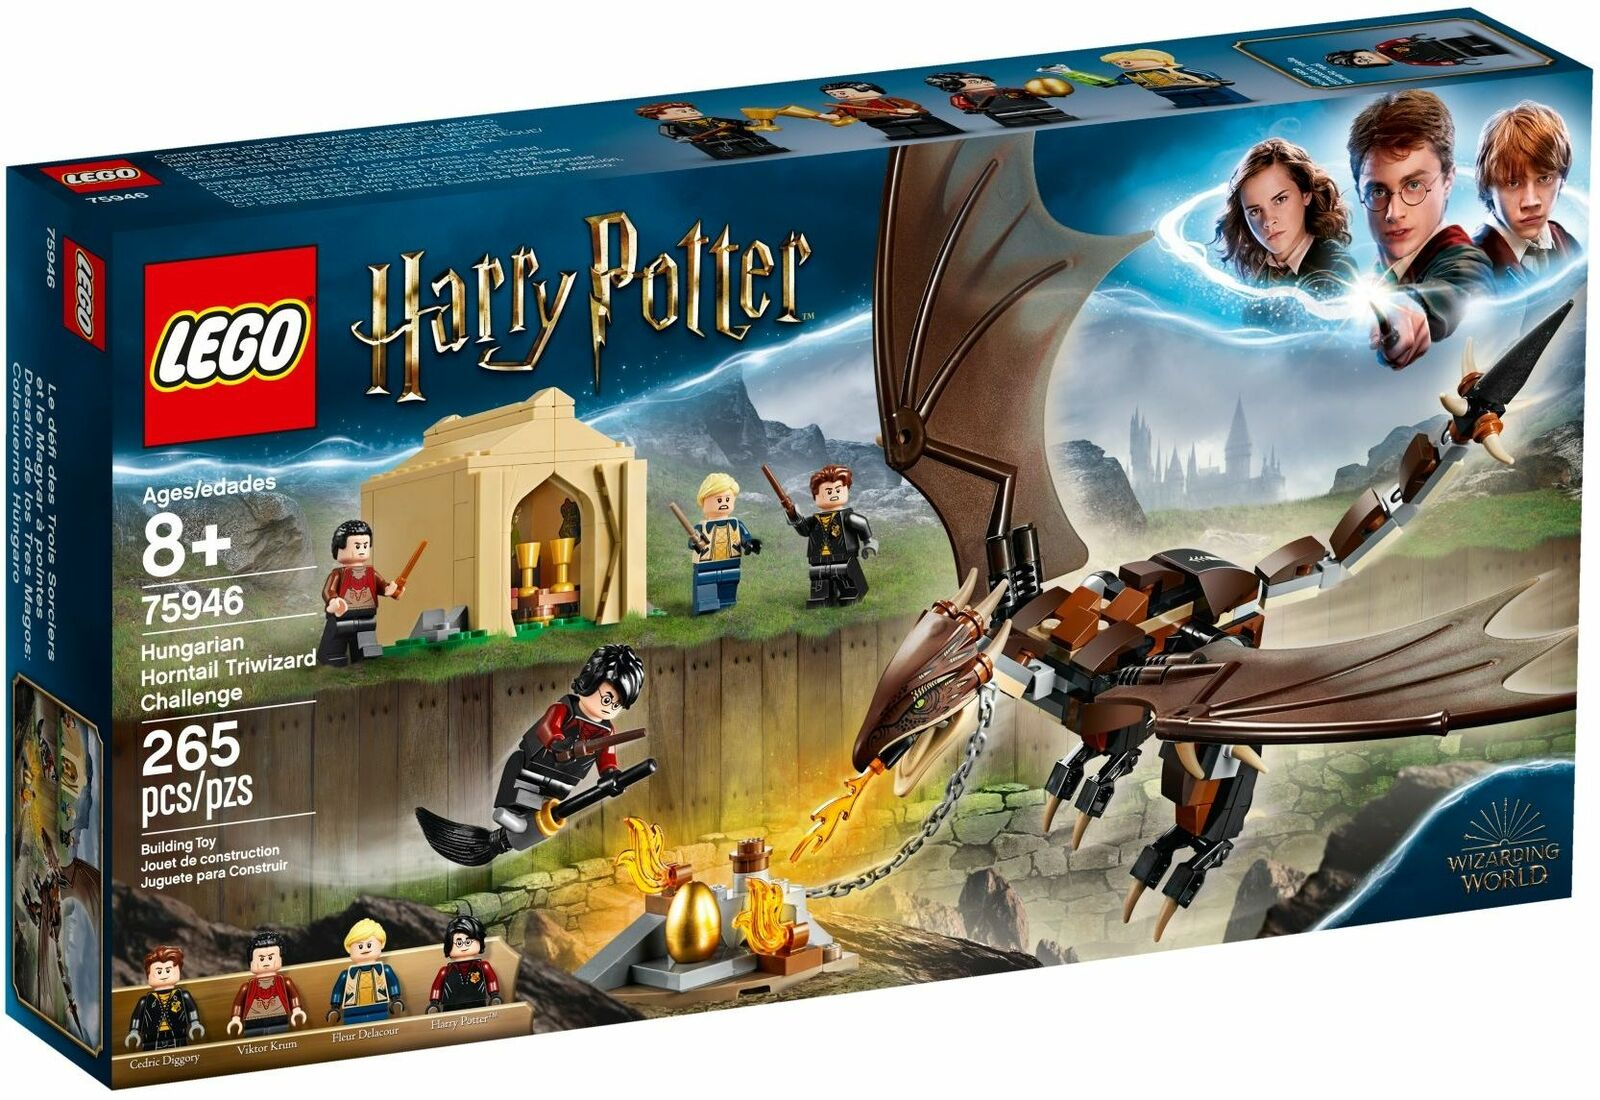 LEGO Harry Potter Hungarian Horntail Triwizard Challenge FREE SHIPPING